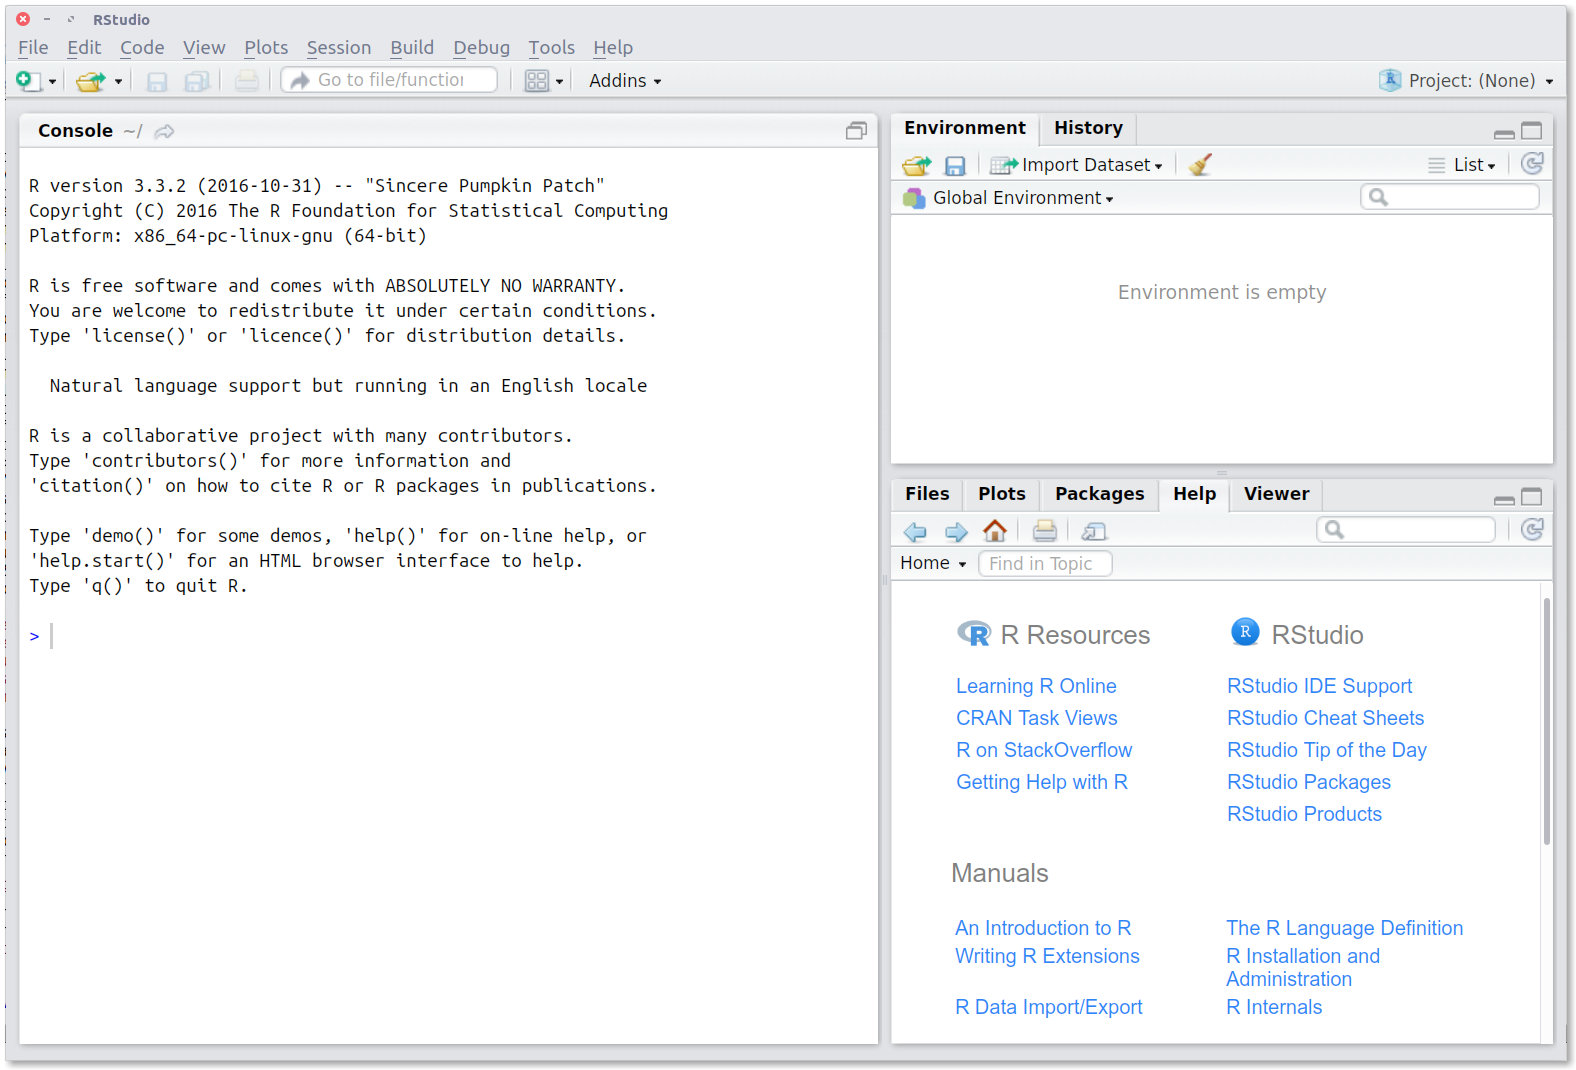 RStudio: Initial layout.